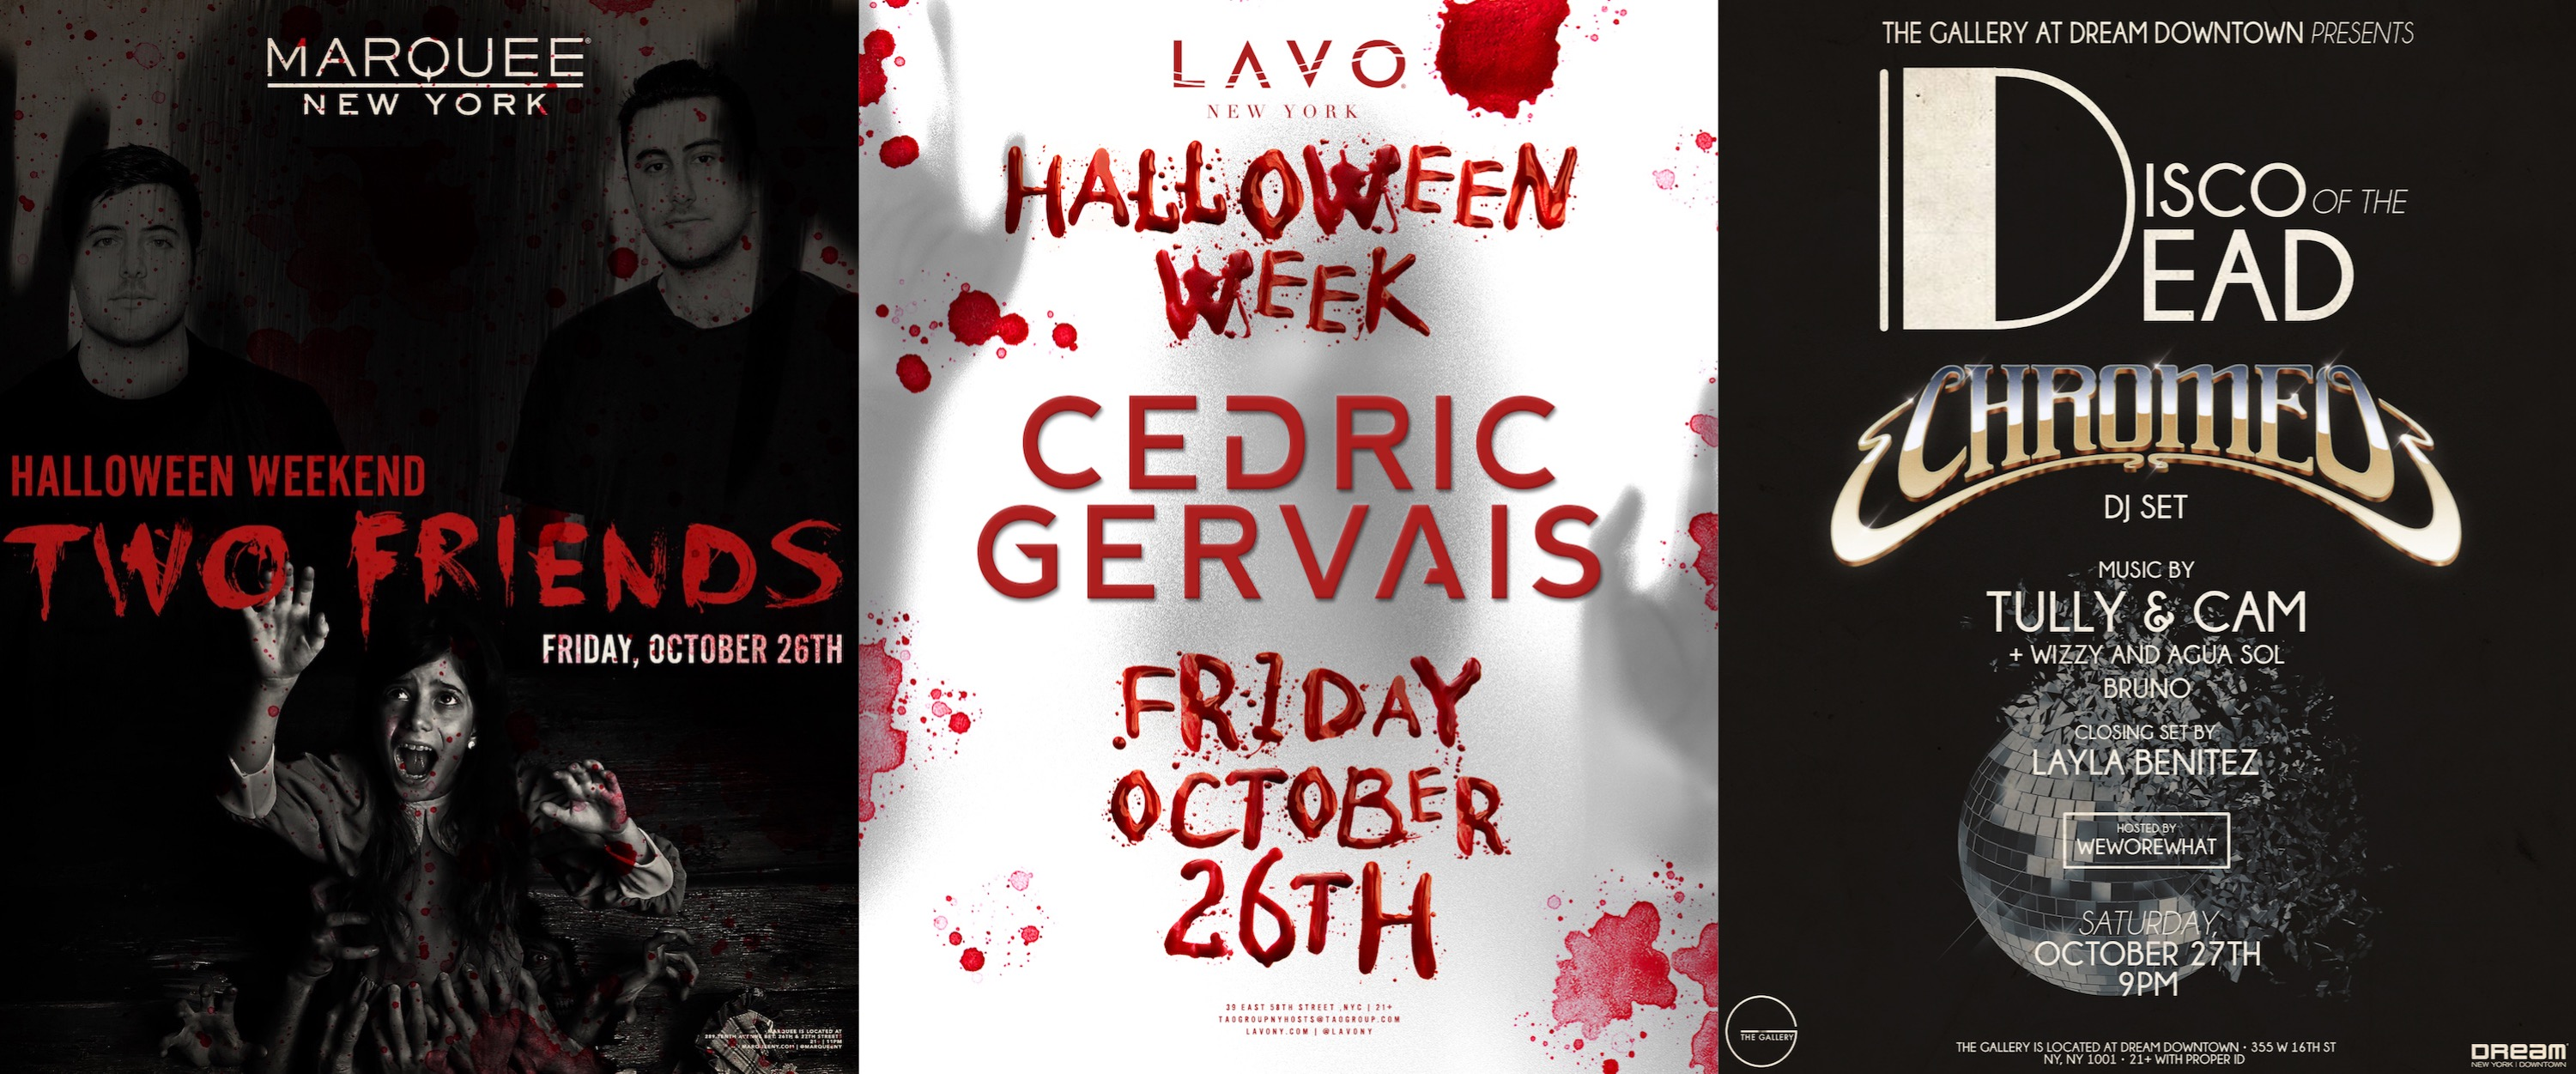 win tickets to two friends, cedric gervais or chromeo this halloween